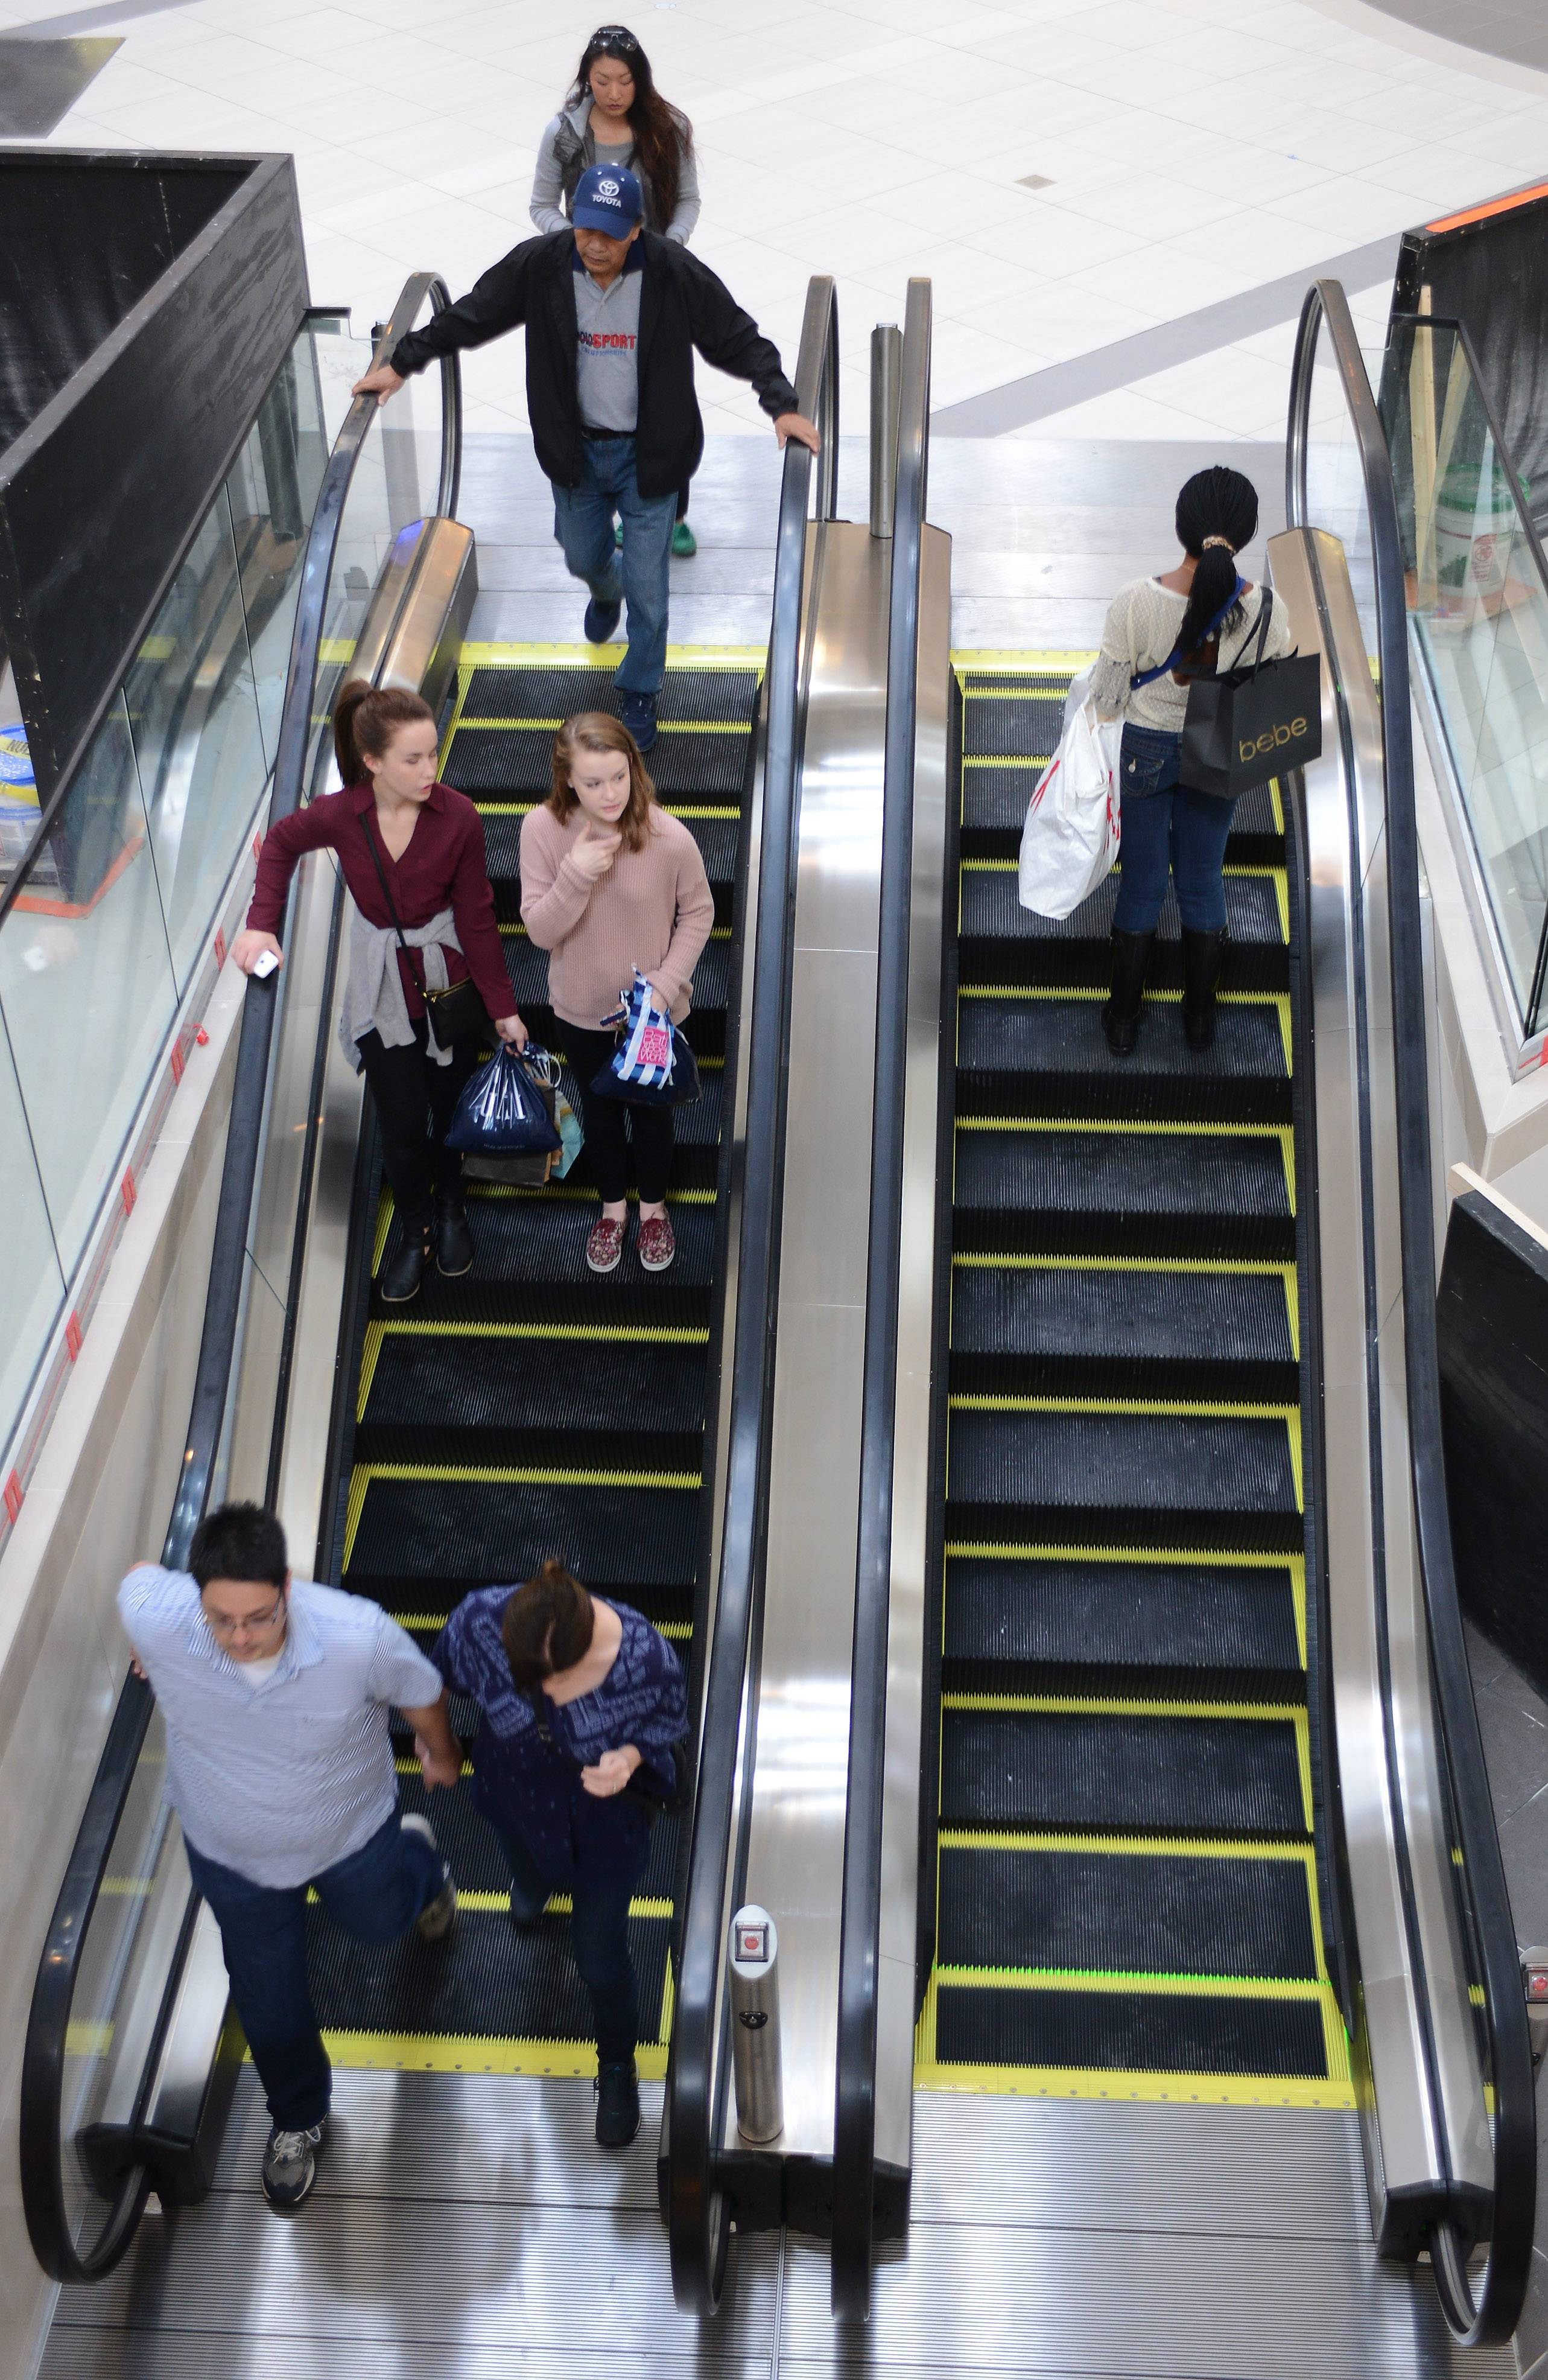 With new elevator and escalators, Woodfield renovations nearing completion